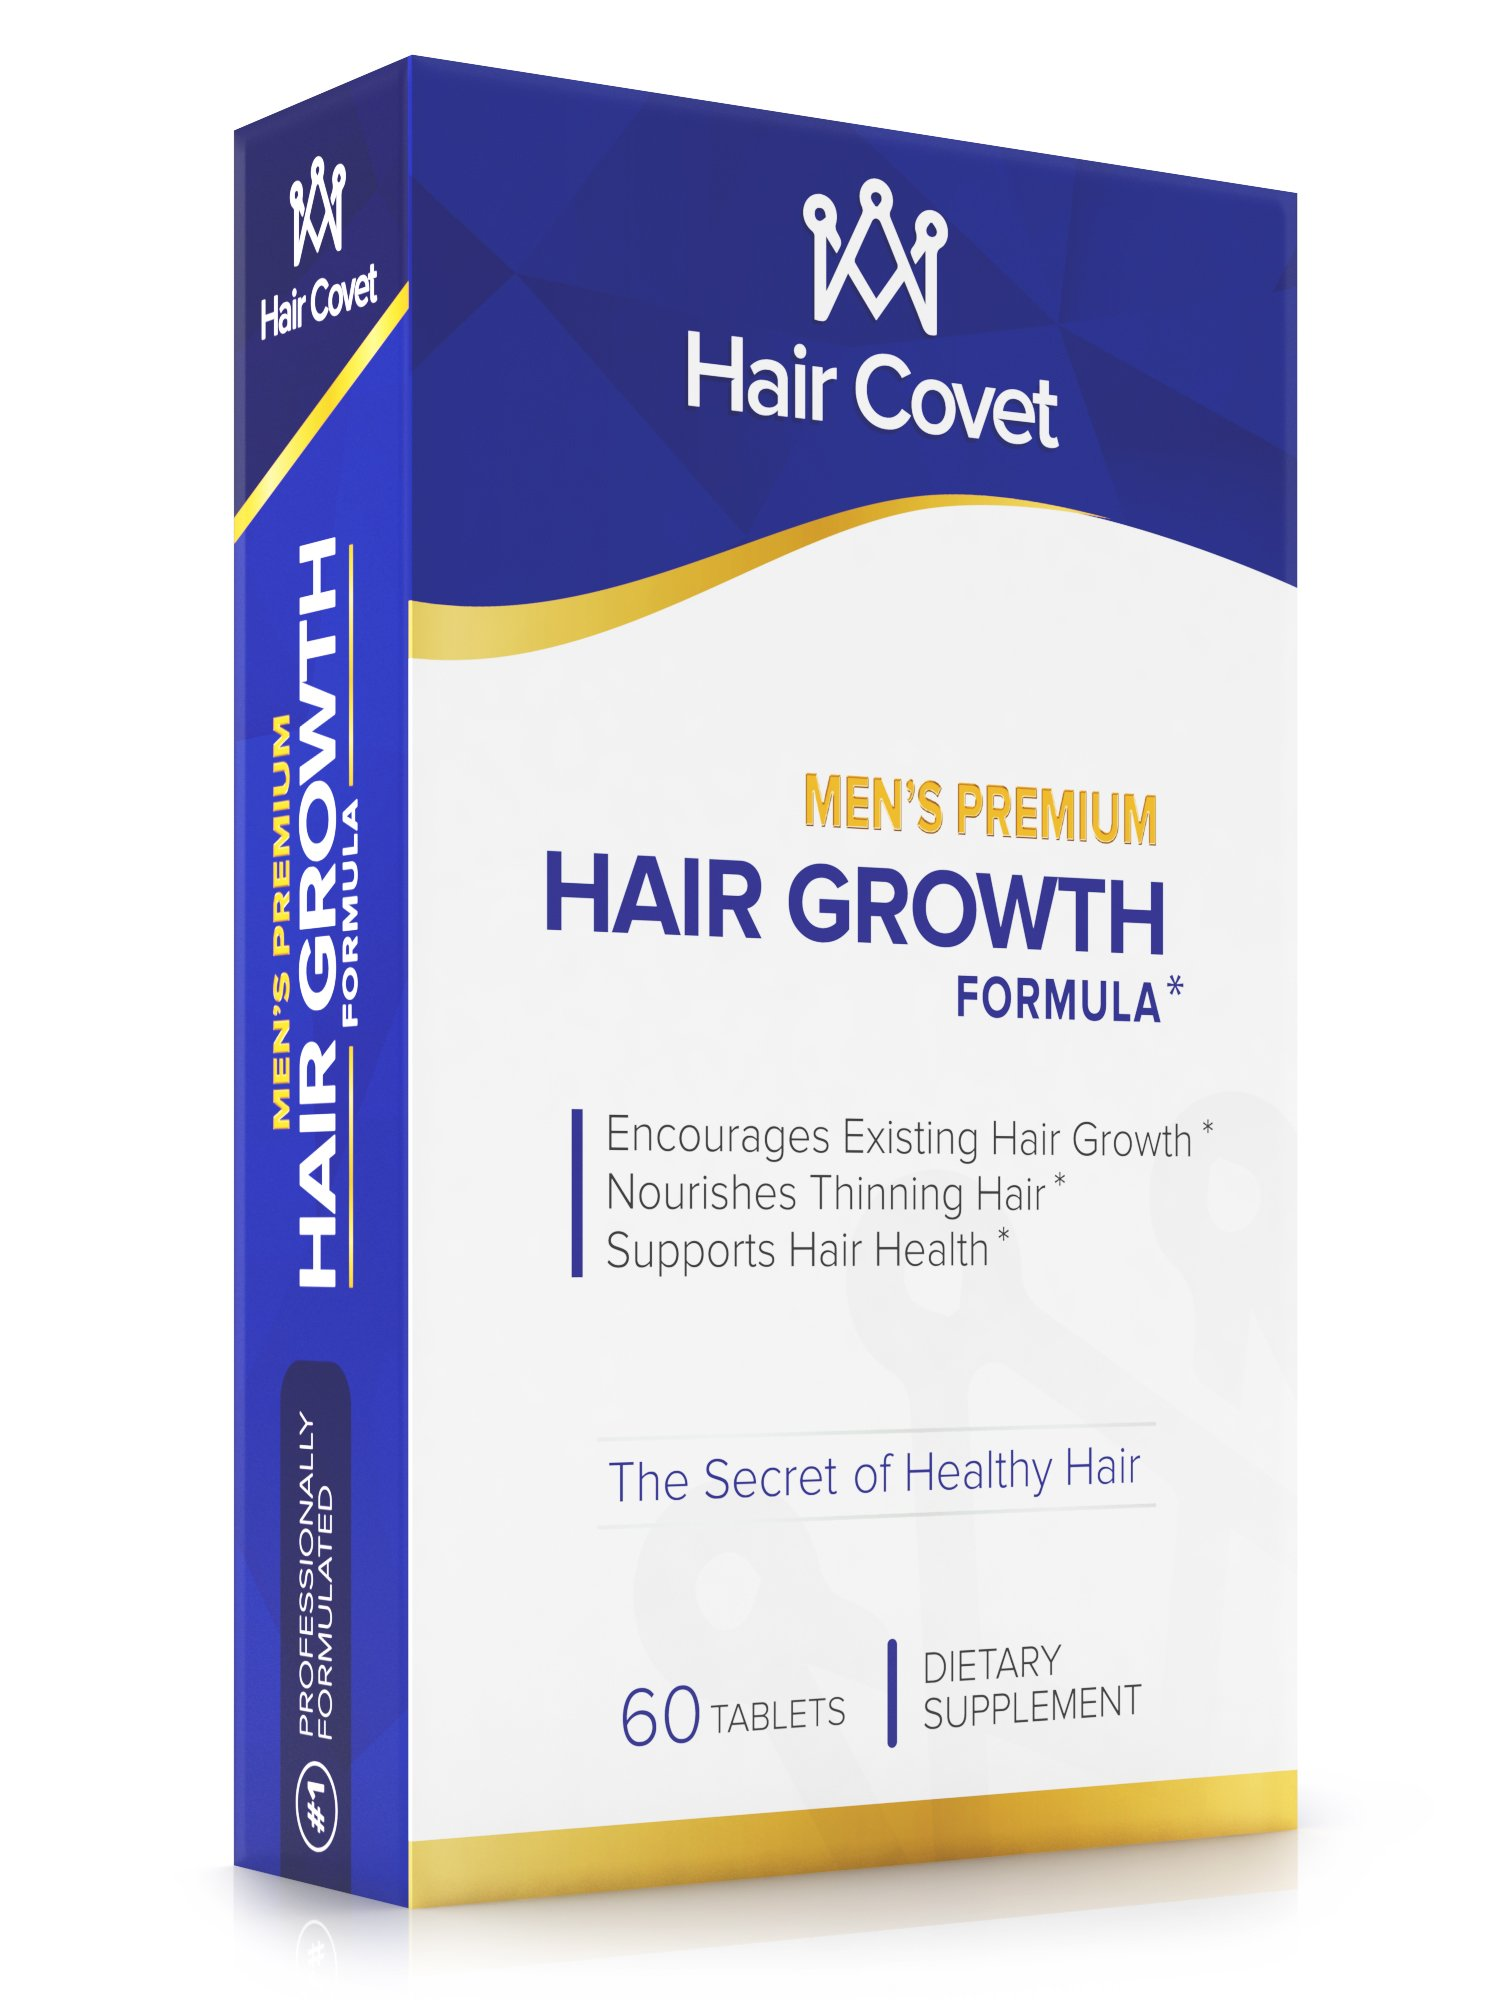 Men's Hair Growth Vitamins with Biotin (5000 mcg)   Fortifies Follicles   Longer, Stronger, Thicker, and Healthier   Non-GMO, Gluten & Cruelty Free   120 Small Tablets